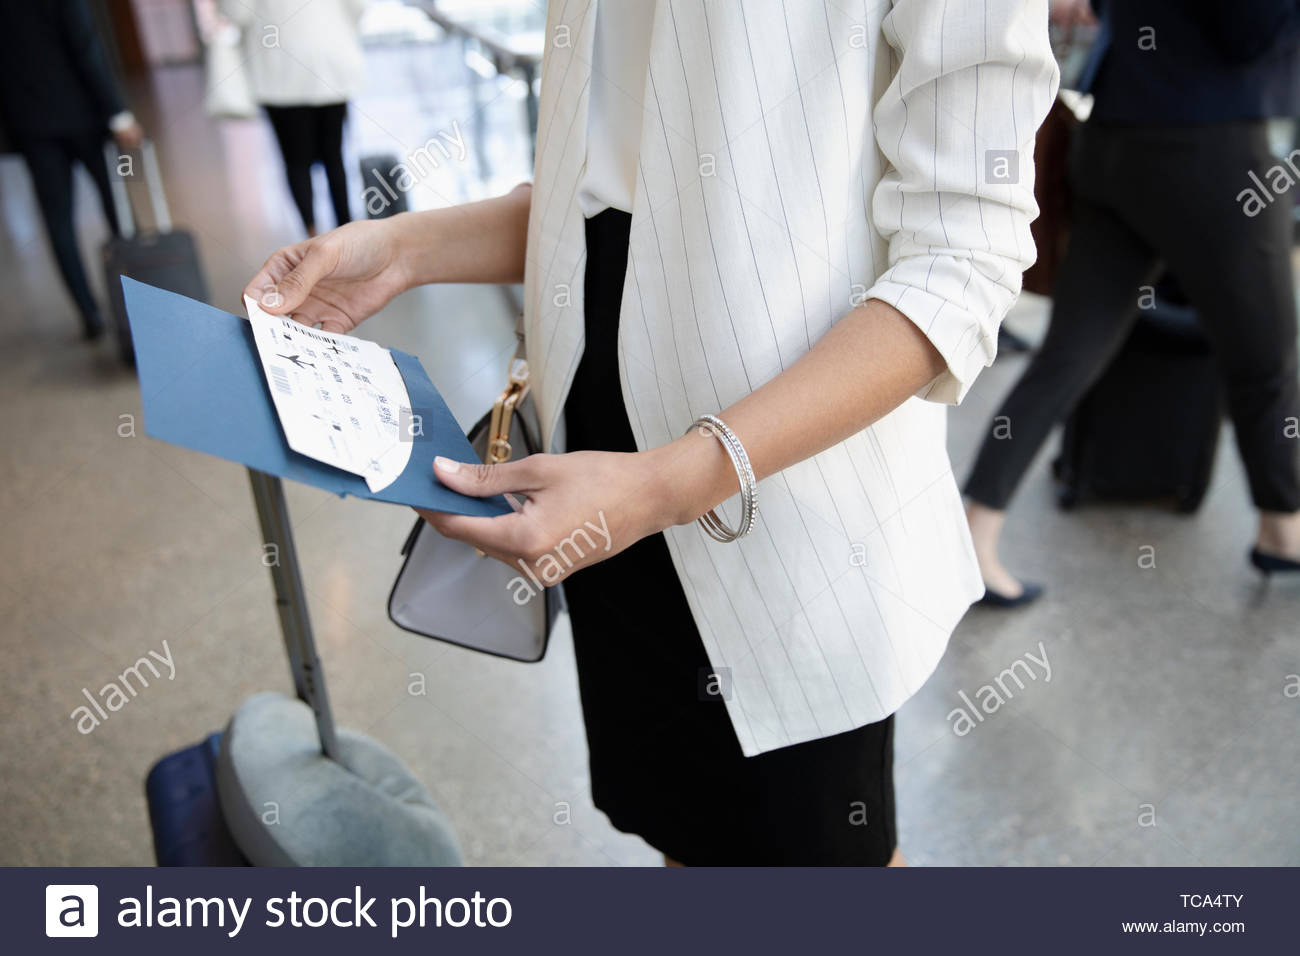 Businesswoman with airplane ticket in airport Photo Stock